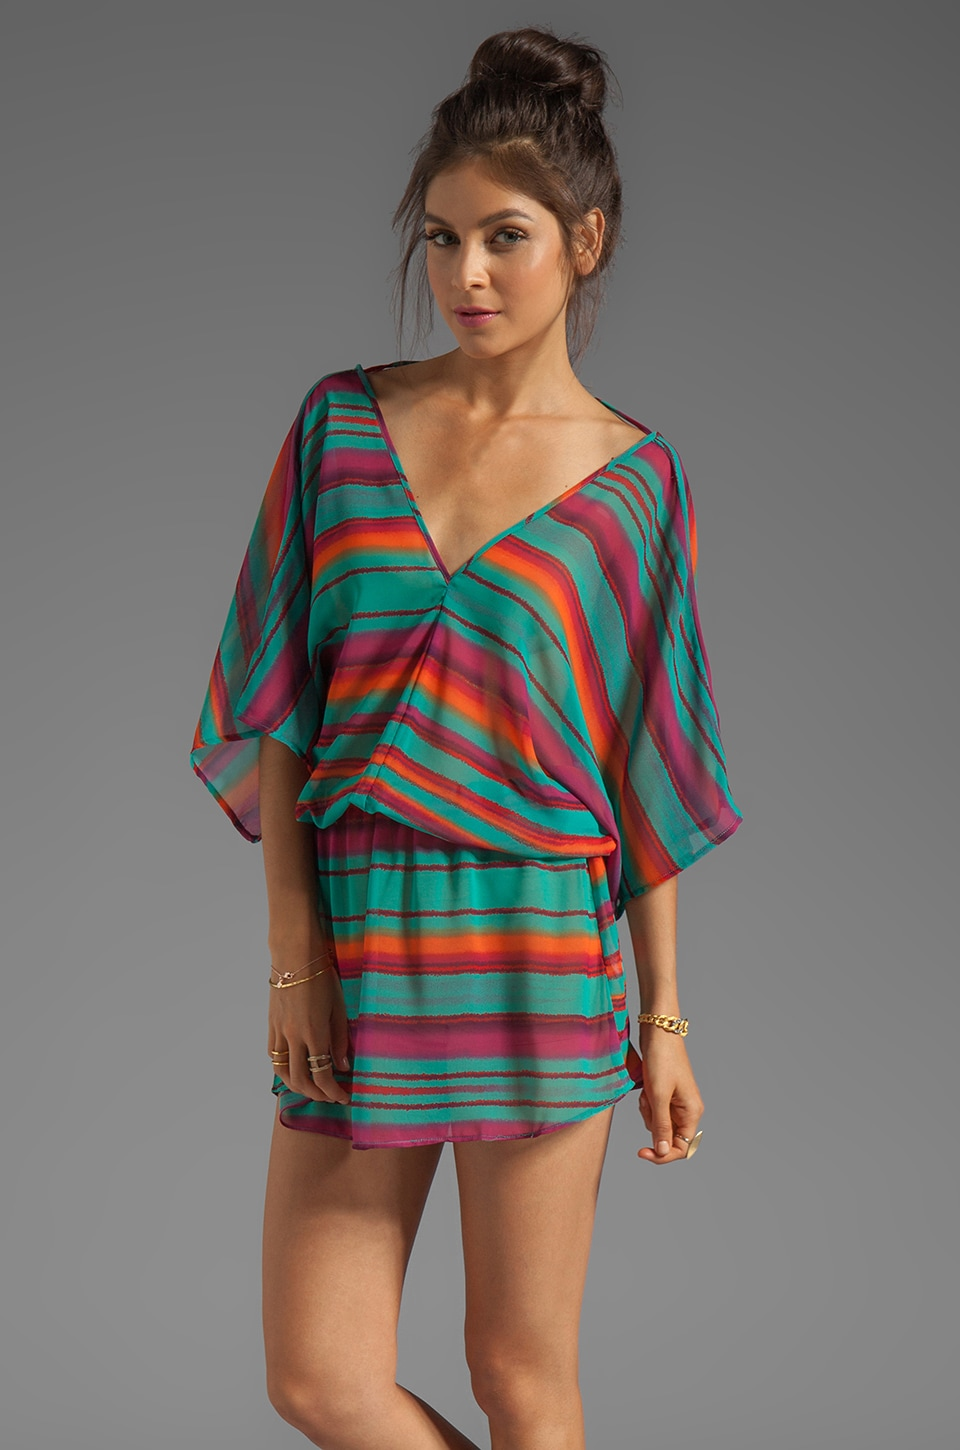 Vix Swimwear Lima Kaftan in Digital Stripe